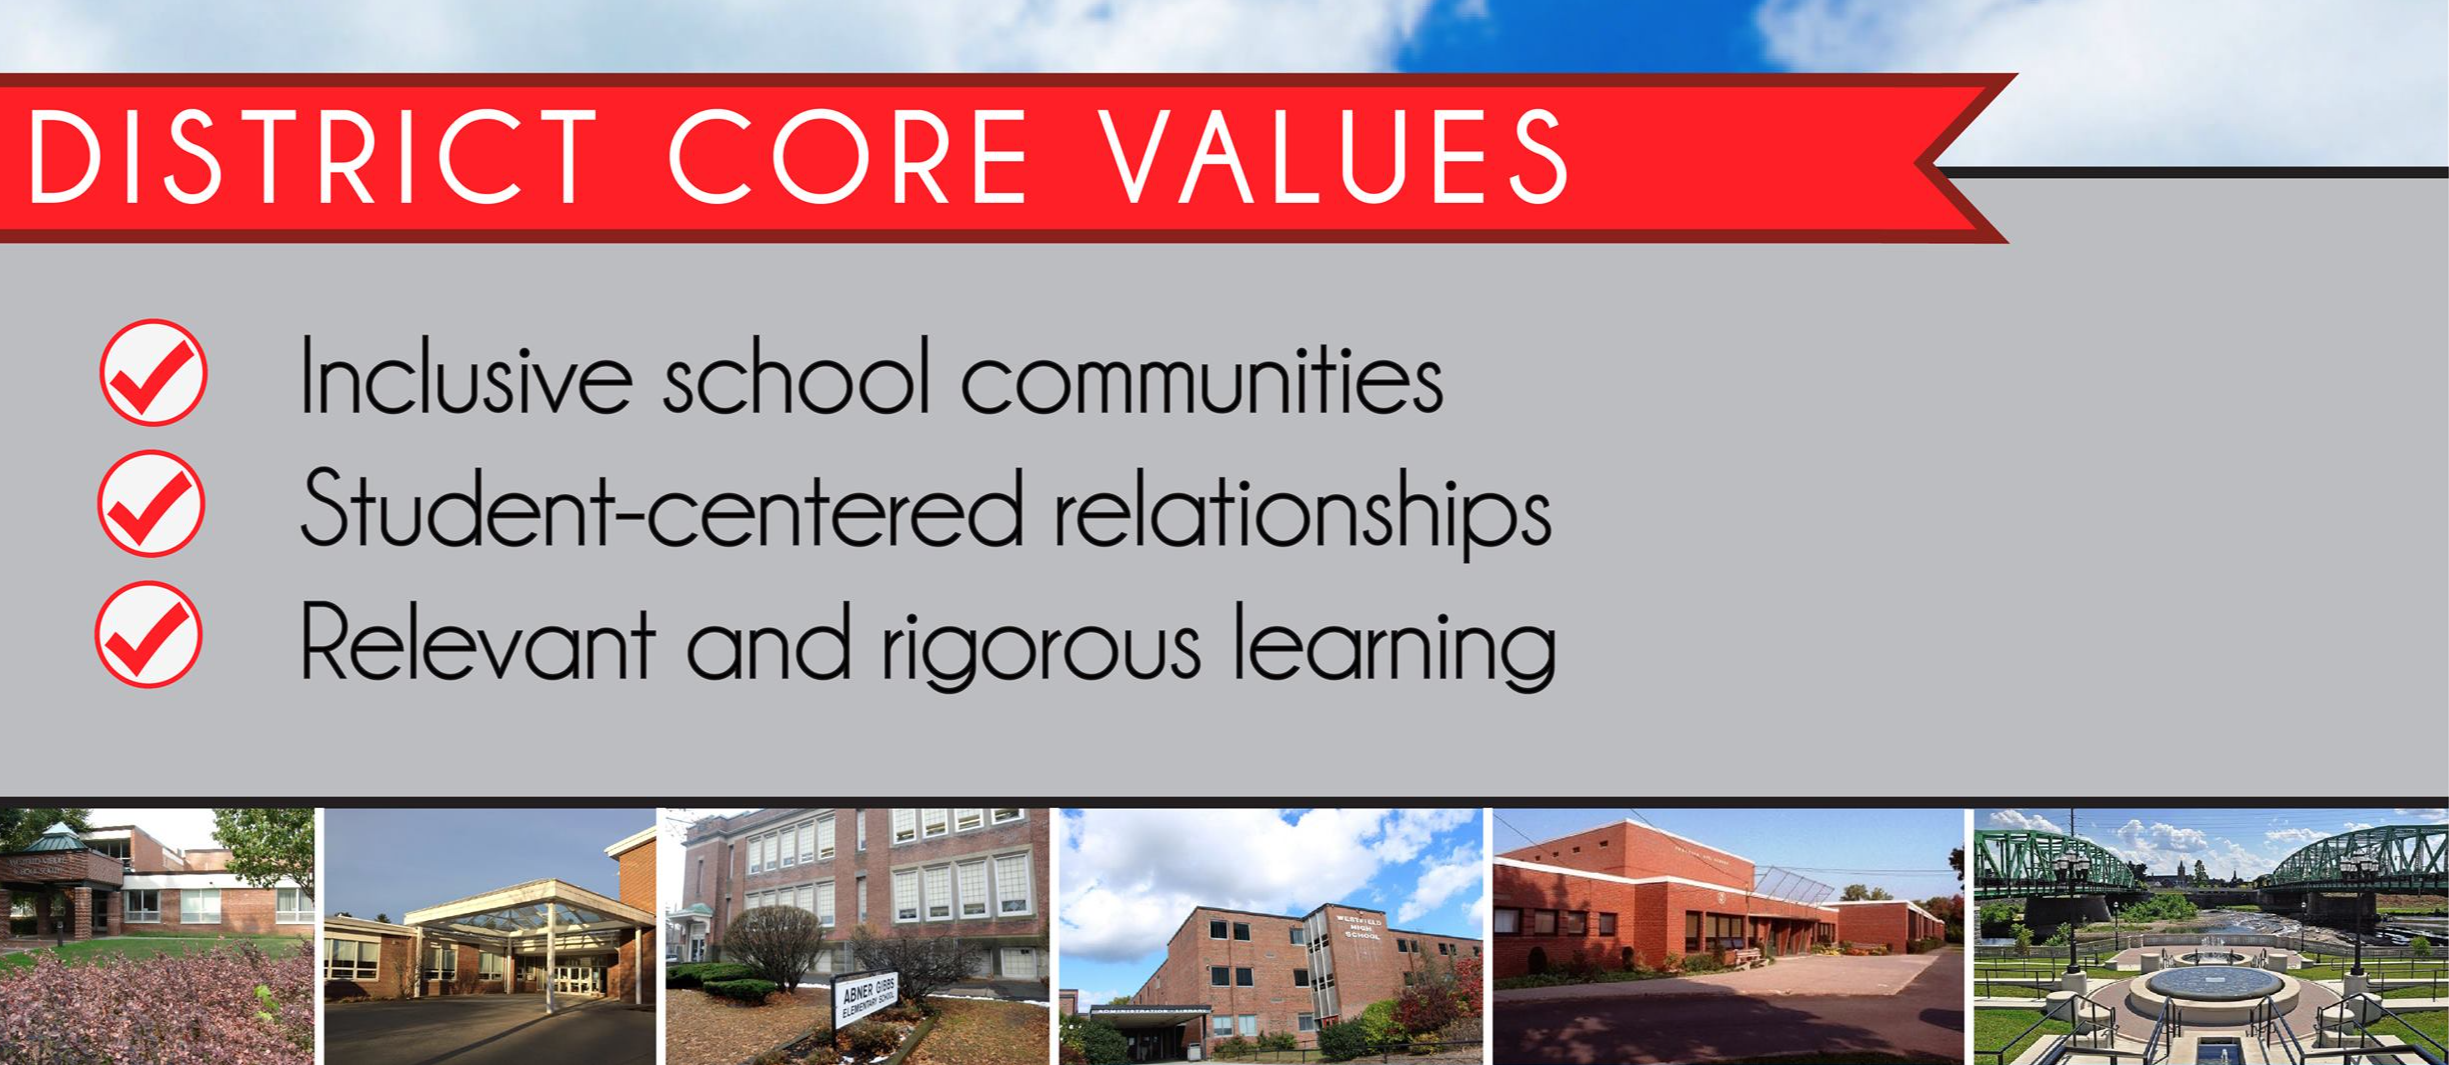 Westfield's district core values: inclusive school communities, student-centered relationships, relevant and rigorous learning